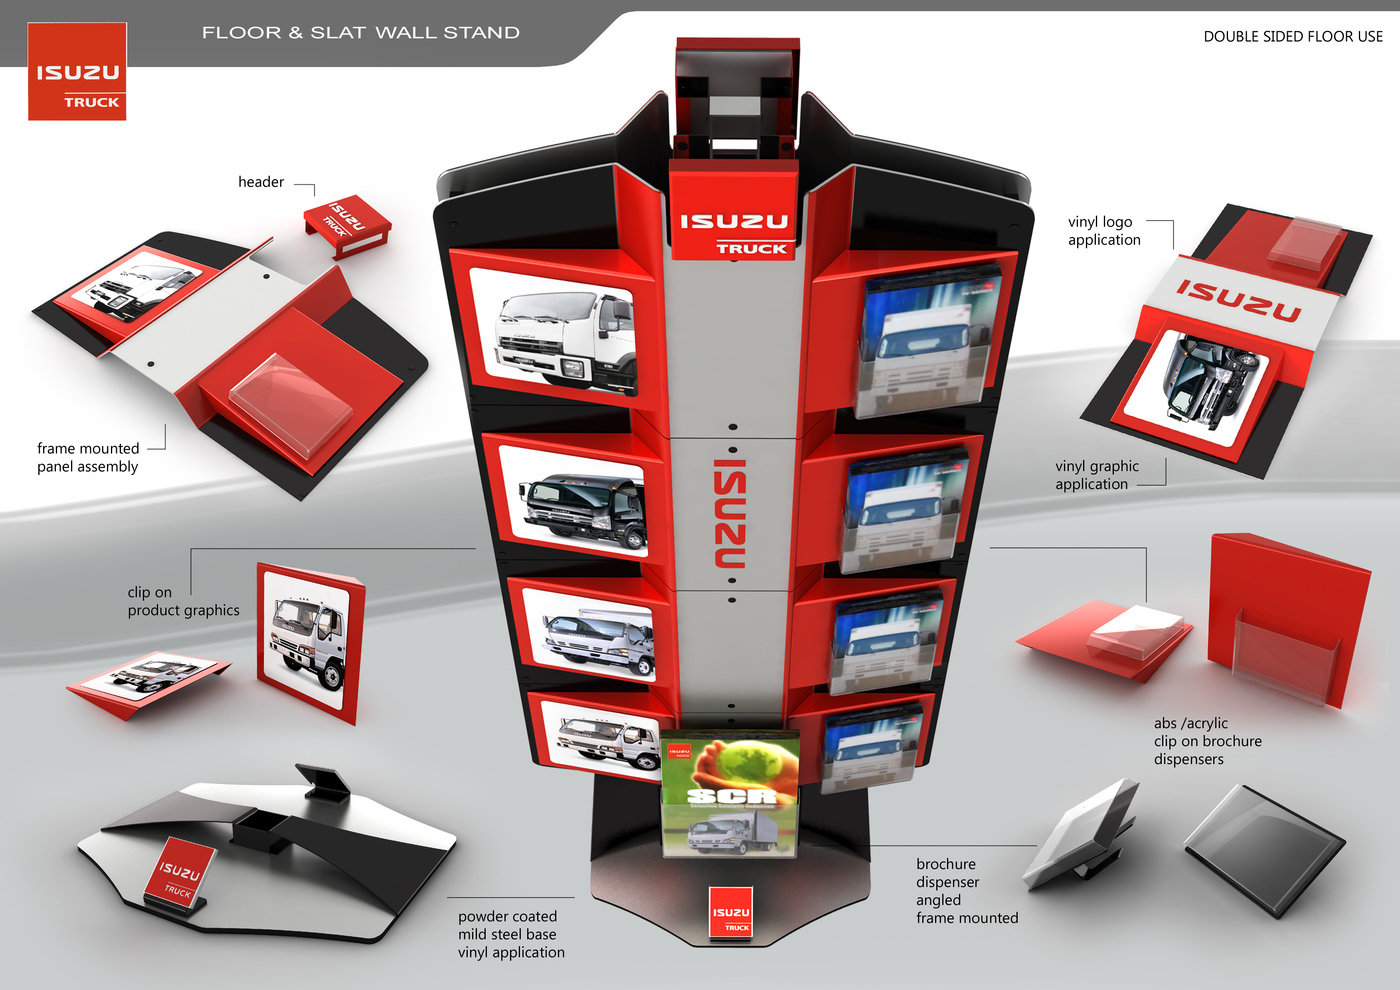 Retail Display Stands Australia Point Of Sale Display Stands By Germaner Product Design G U T